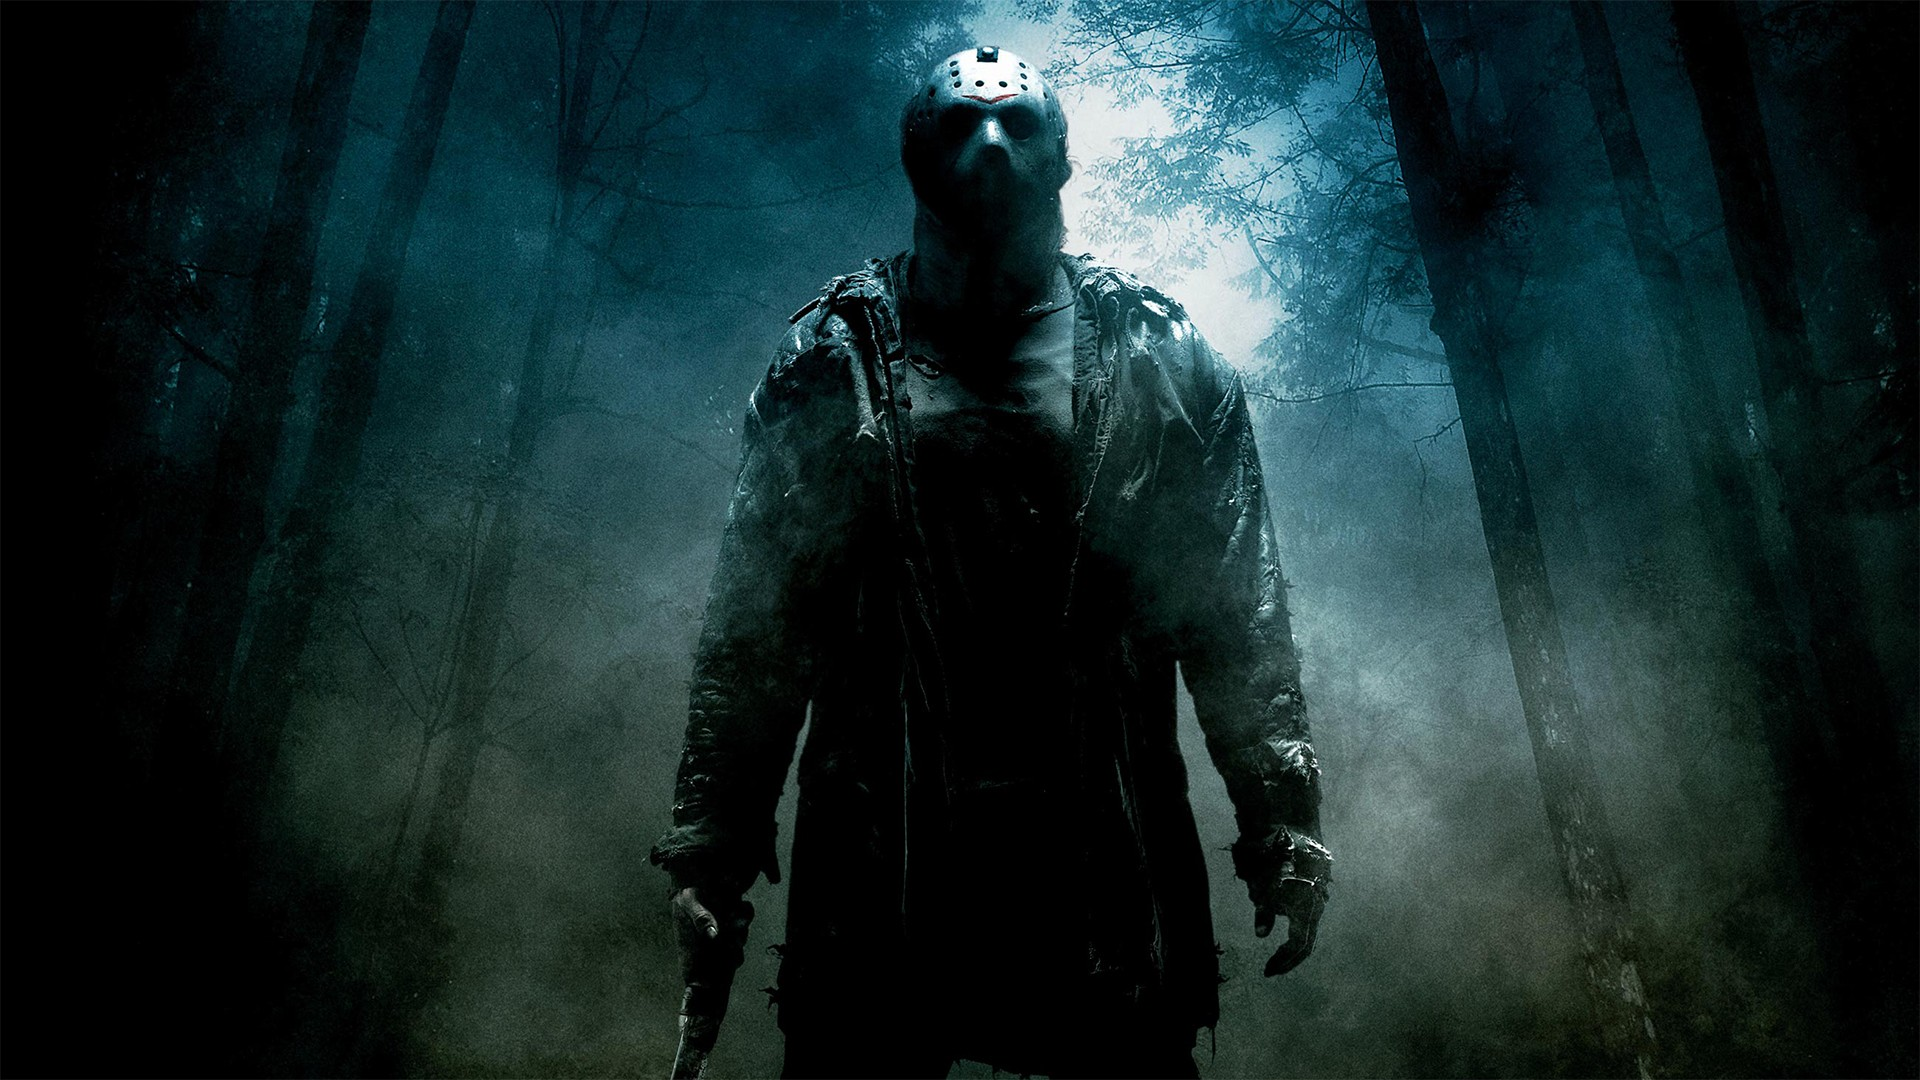 Friday The 13th Wallpapers (High Quality)